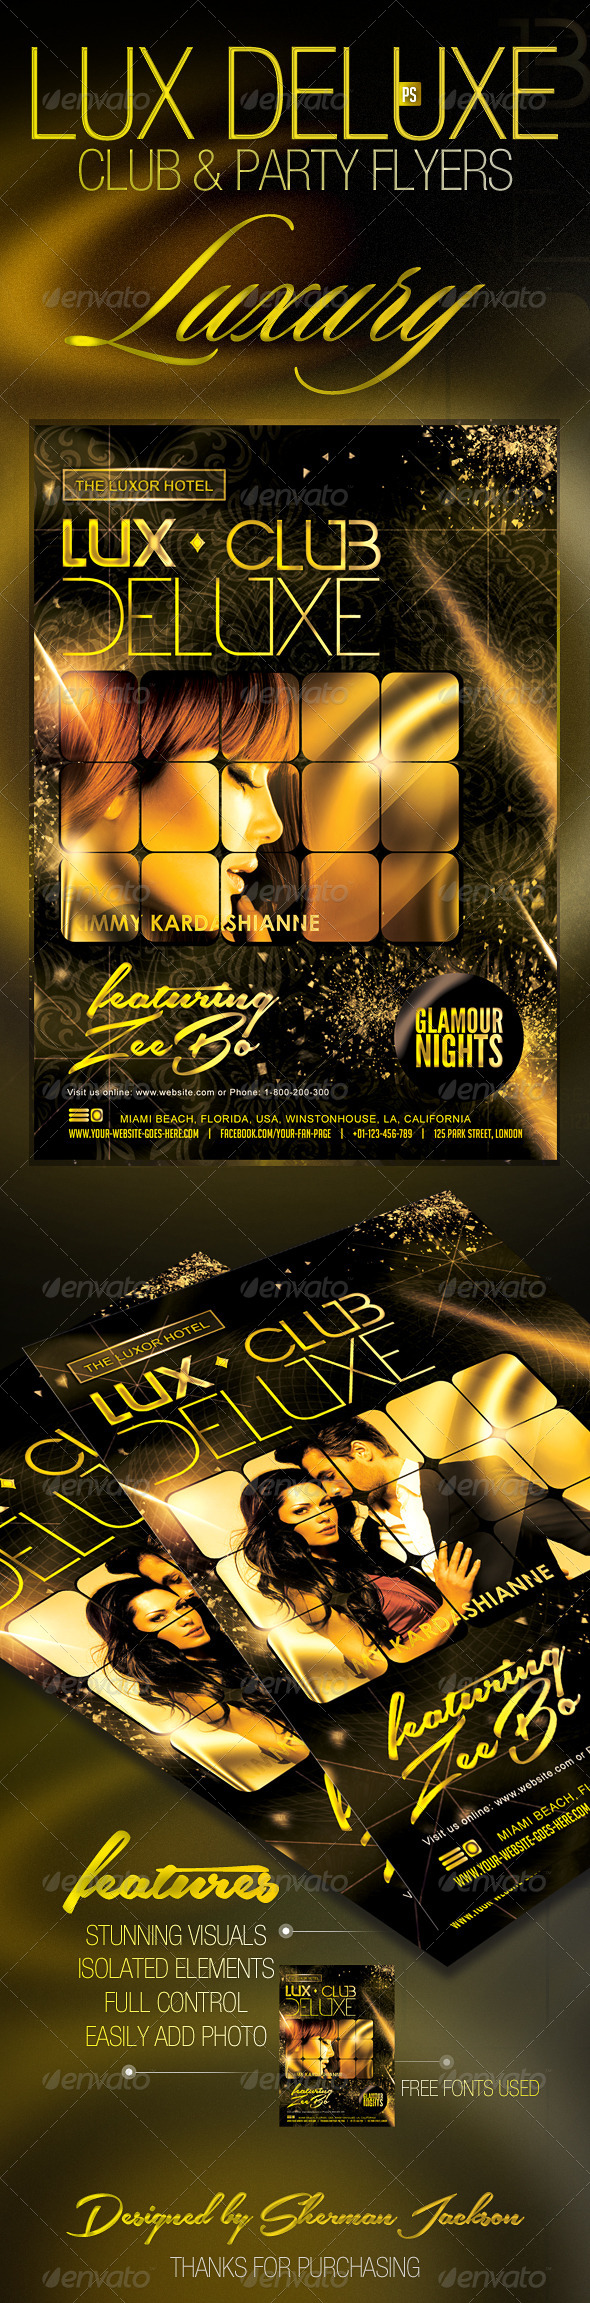 GraphicRiver Lux Deluxe VIP Club Party Flyer 7666811